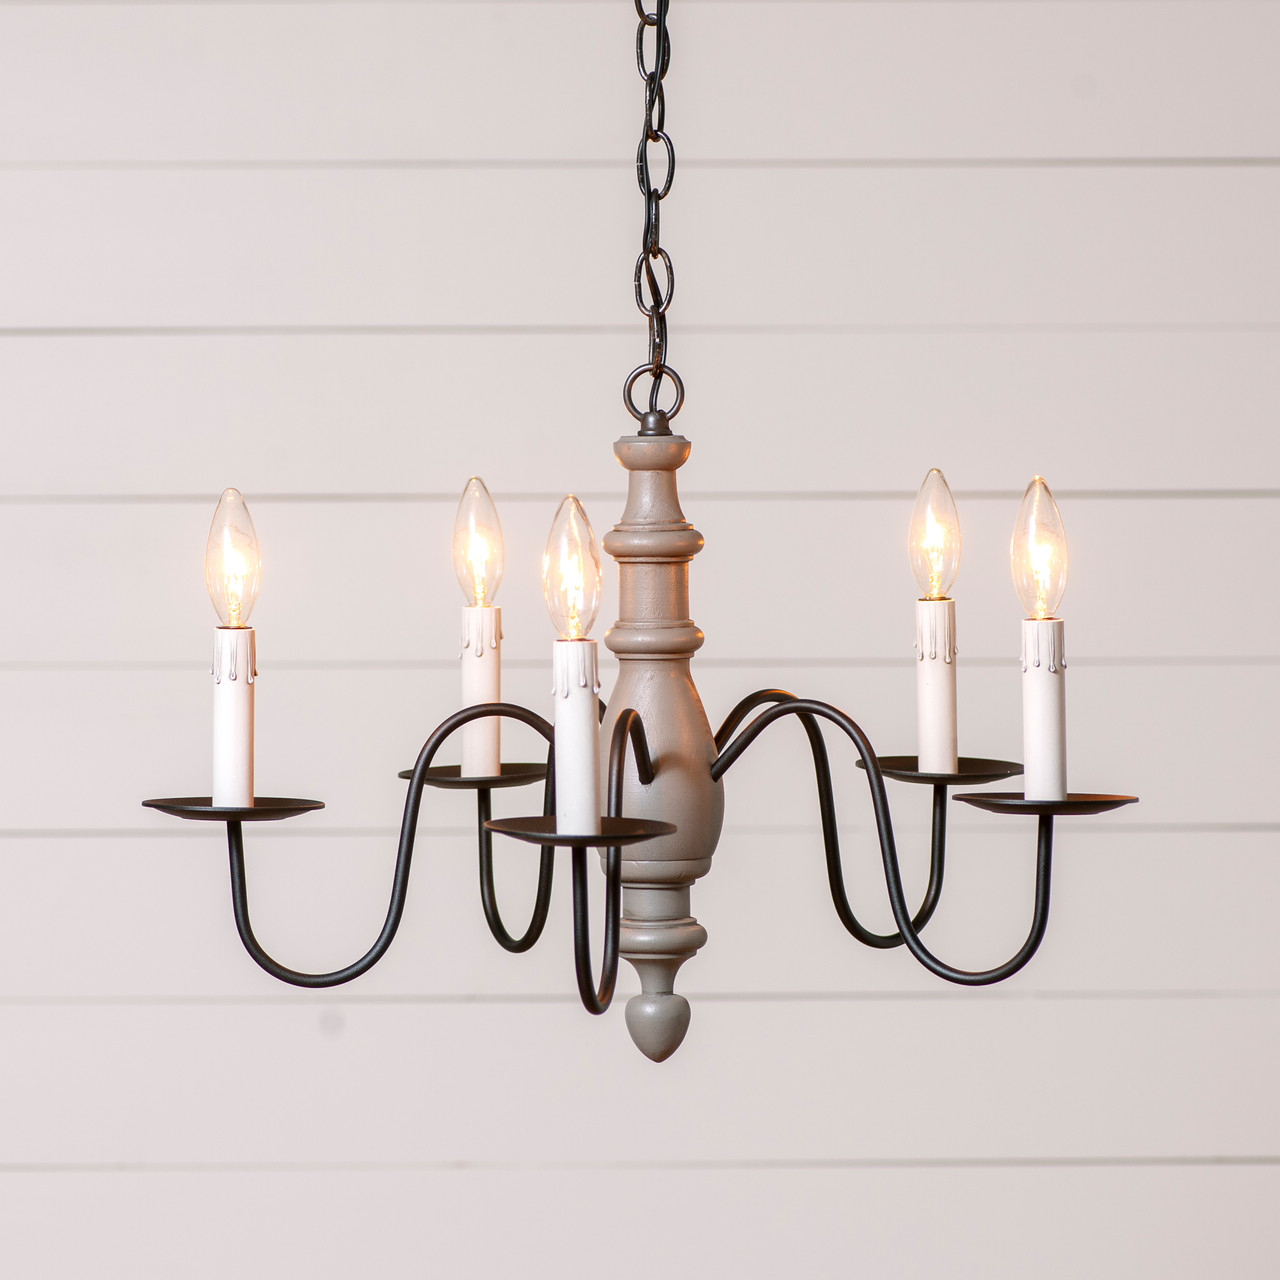 irvin s country inn wood chandelier rustic chic finish